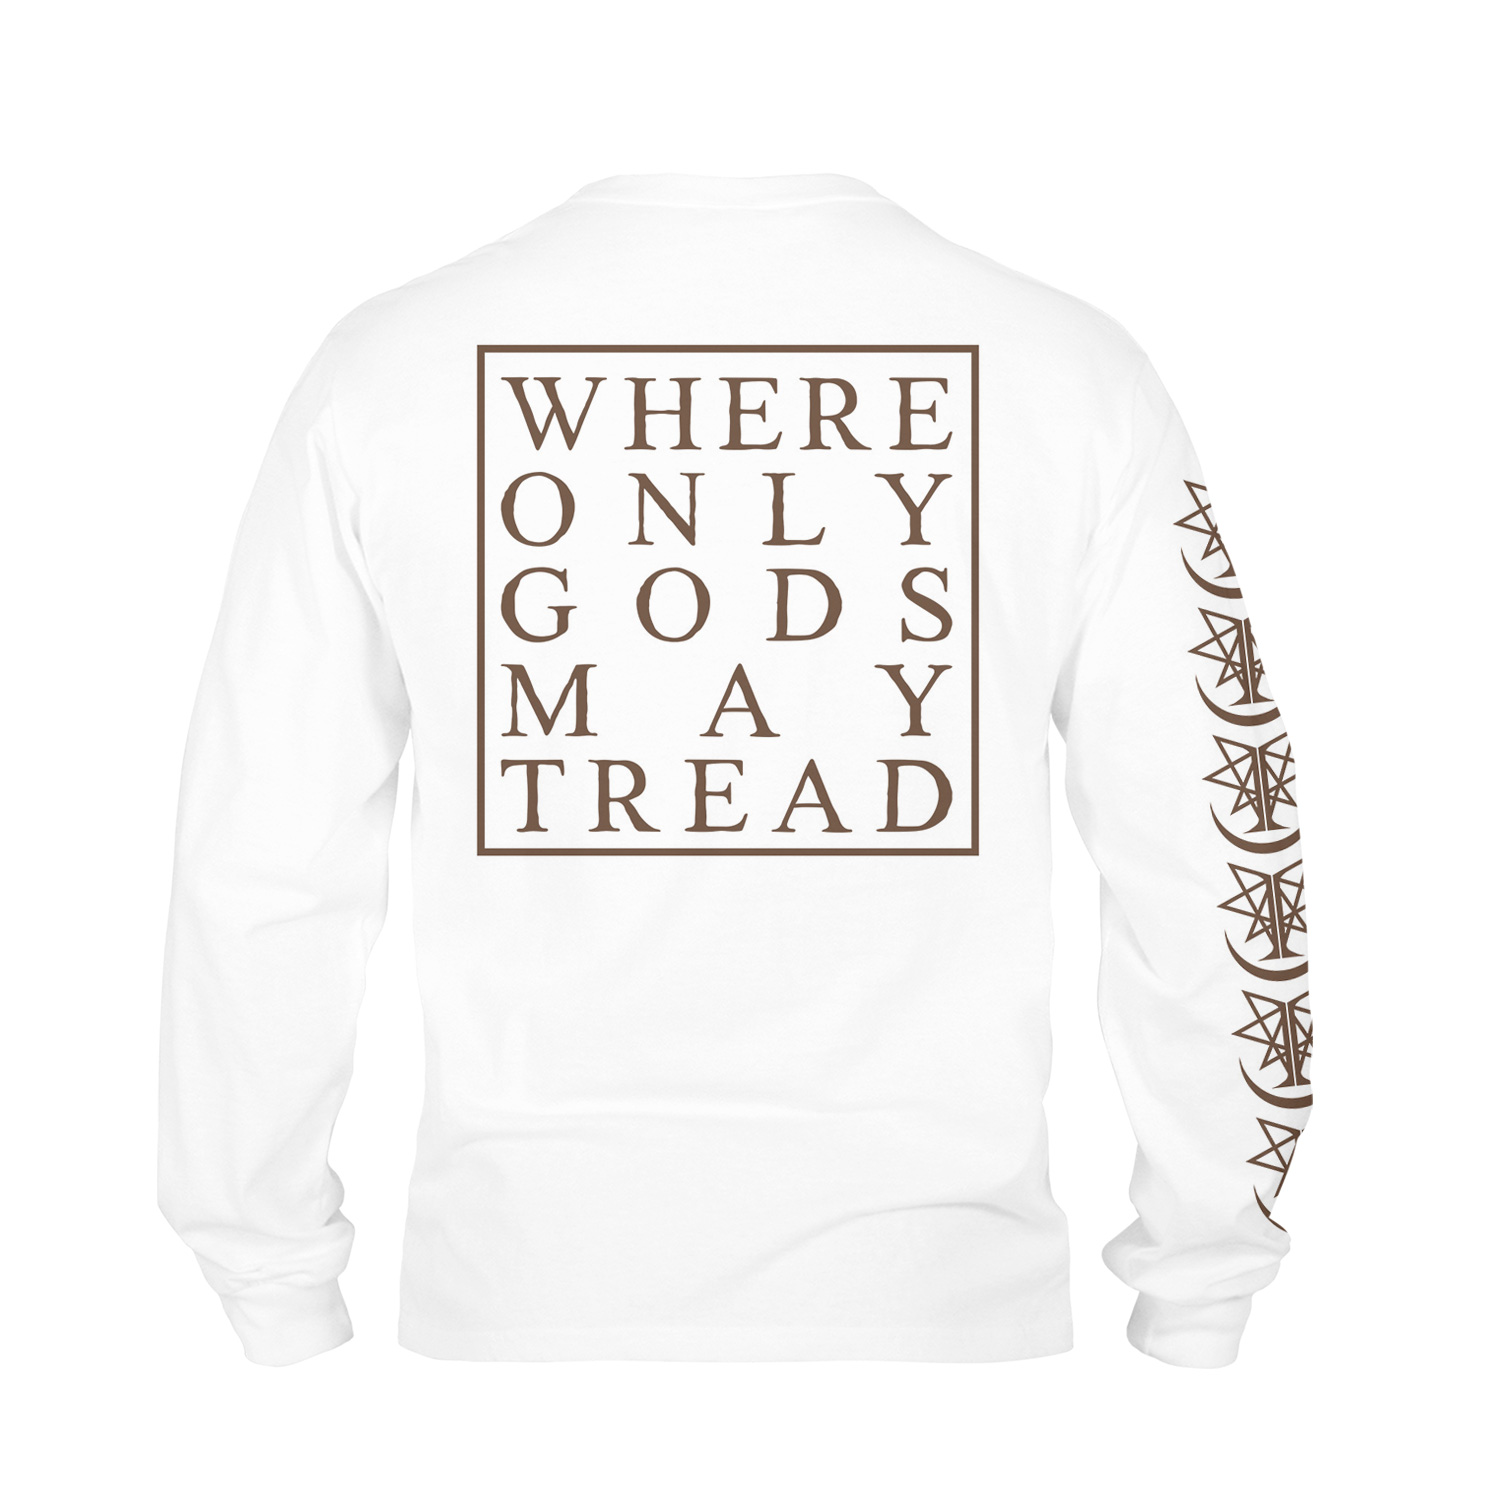 Where Only Gods May Tread (white)